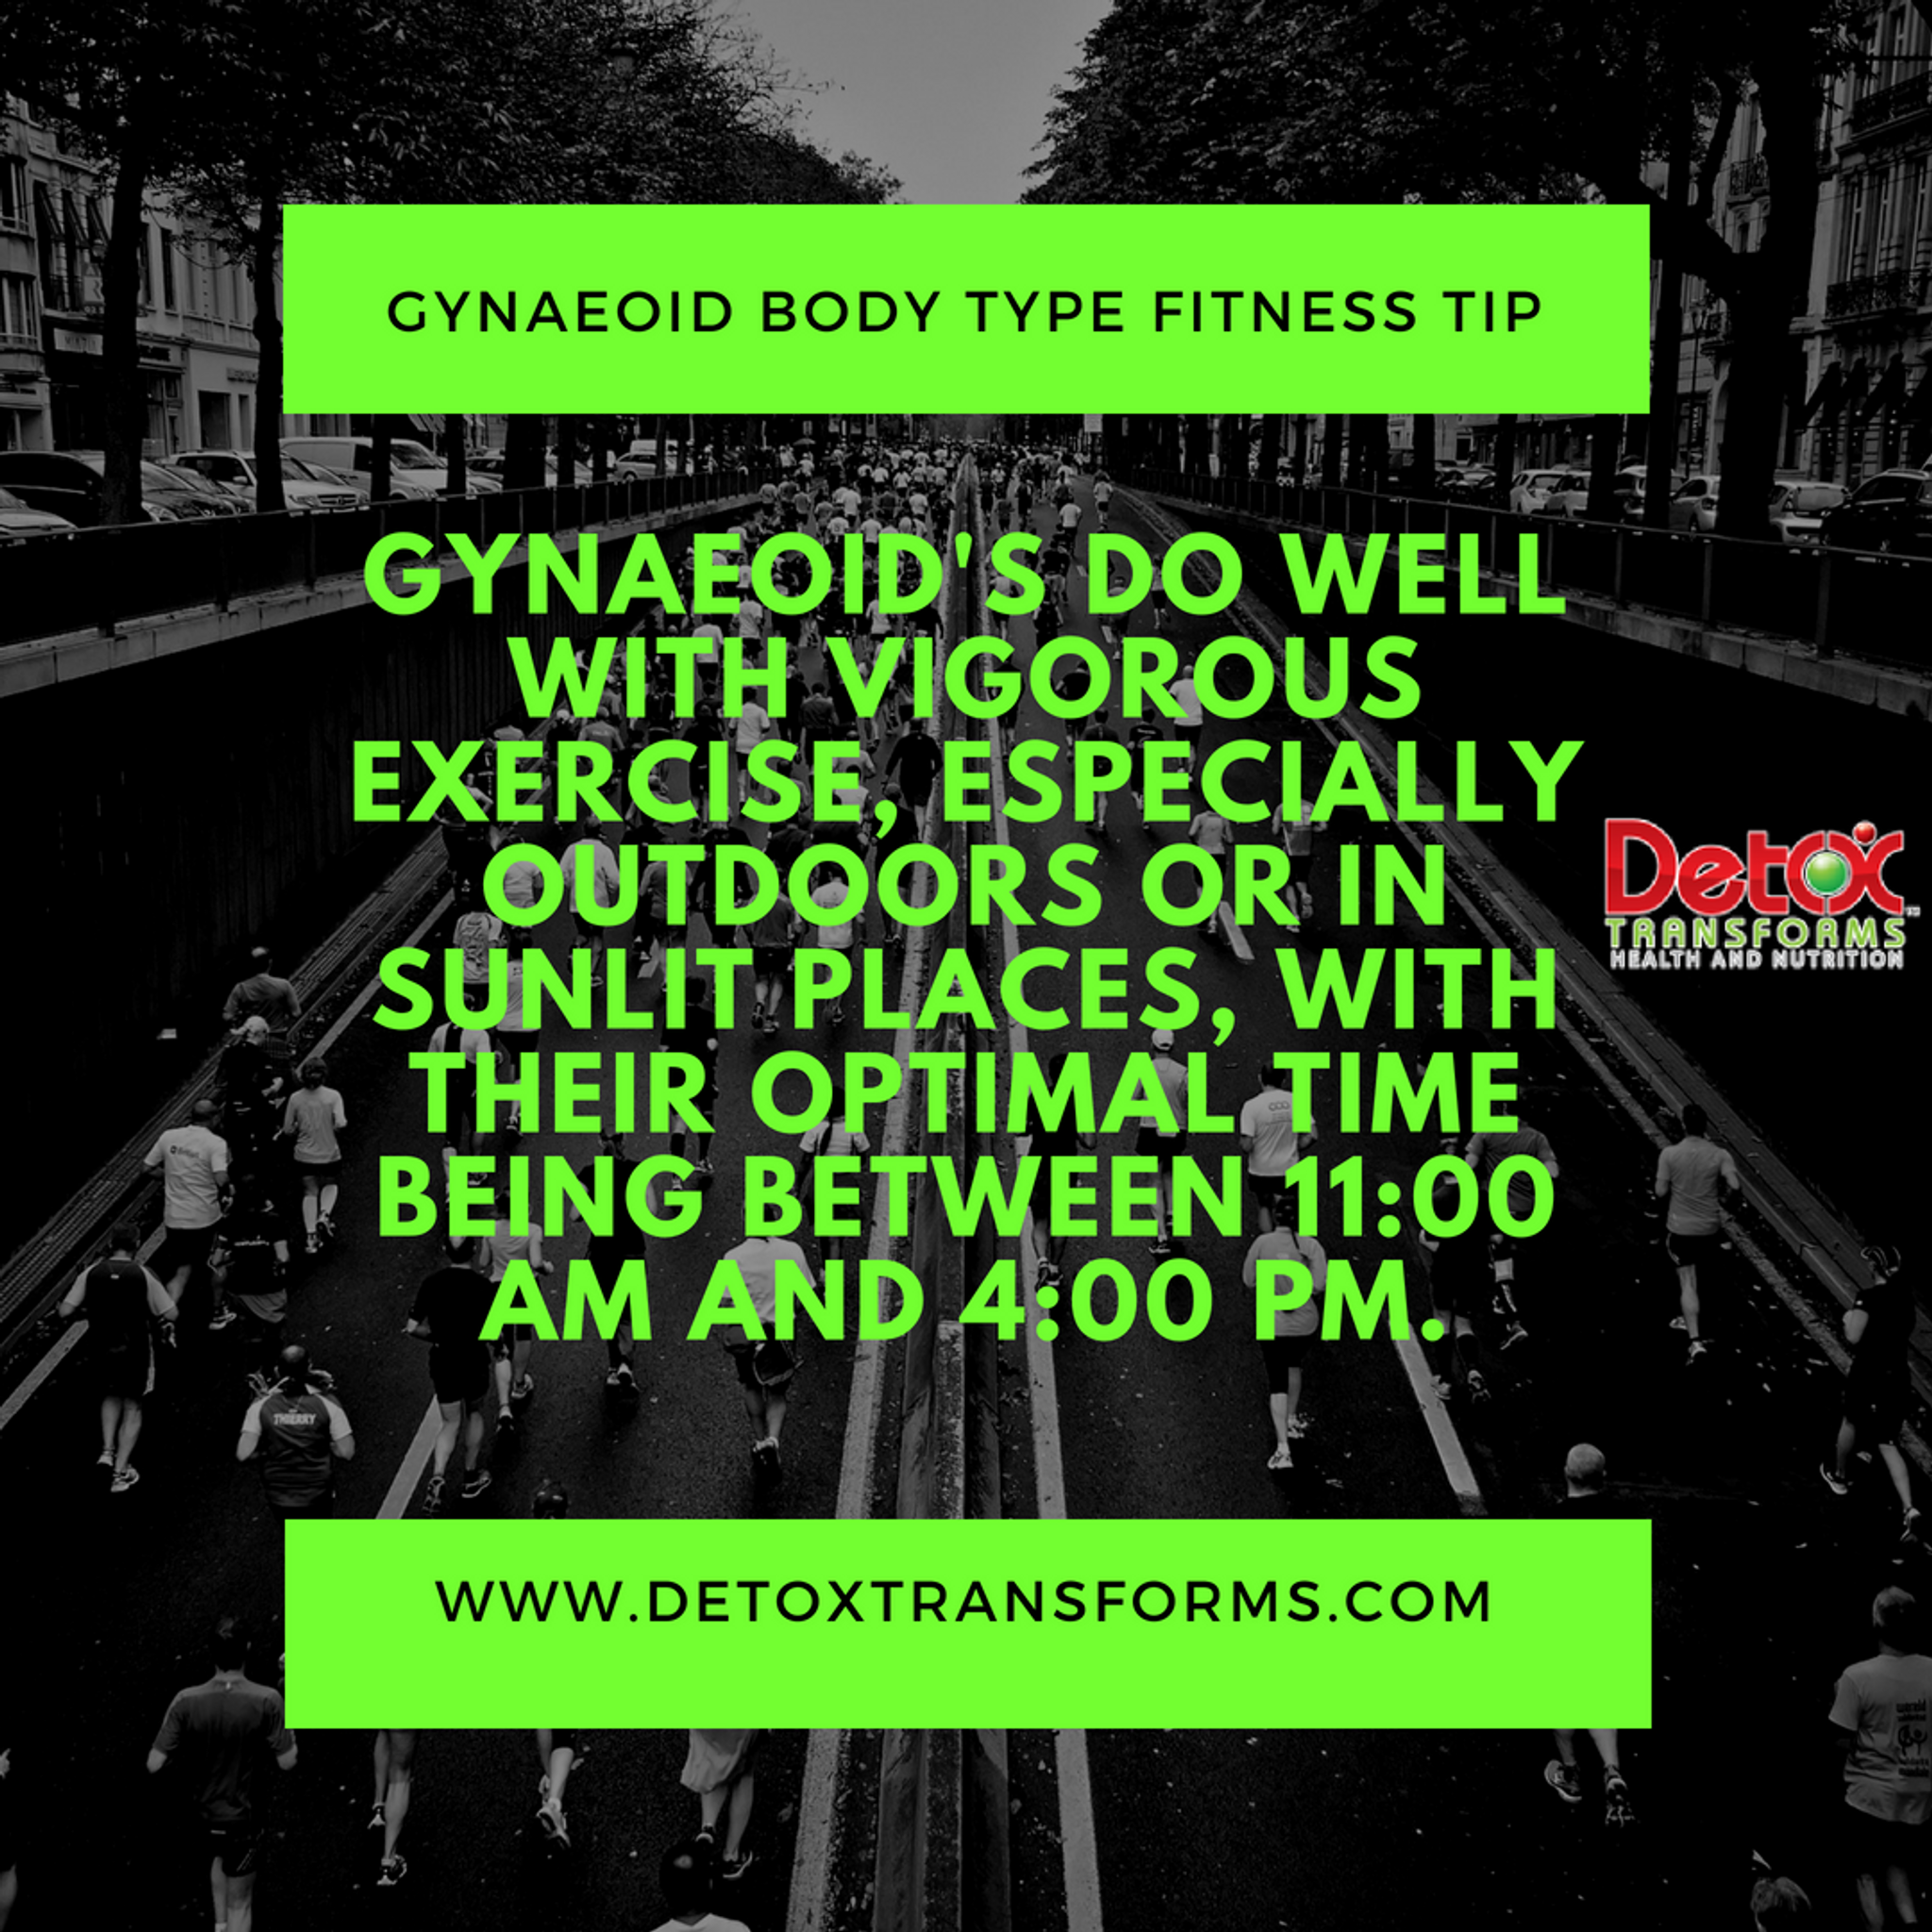 Gynaeoid Body Type Fitness Tip